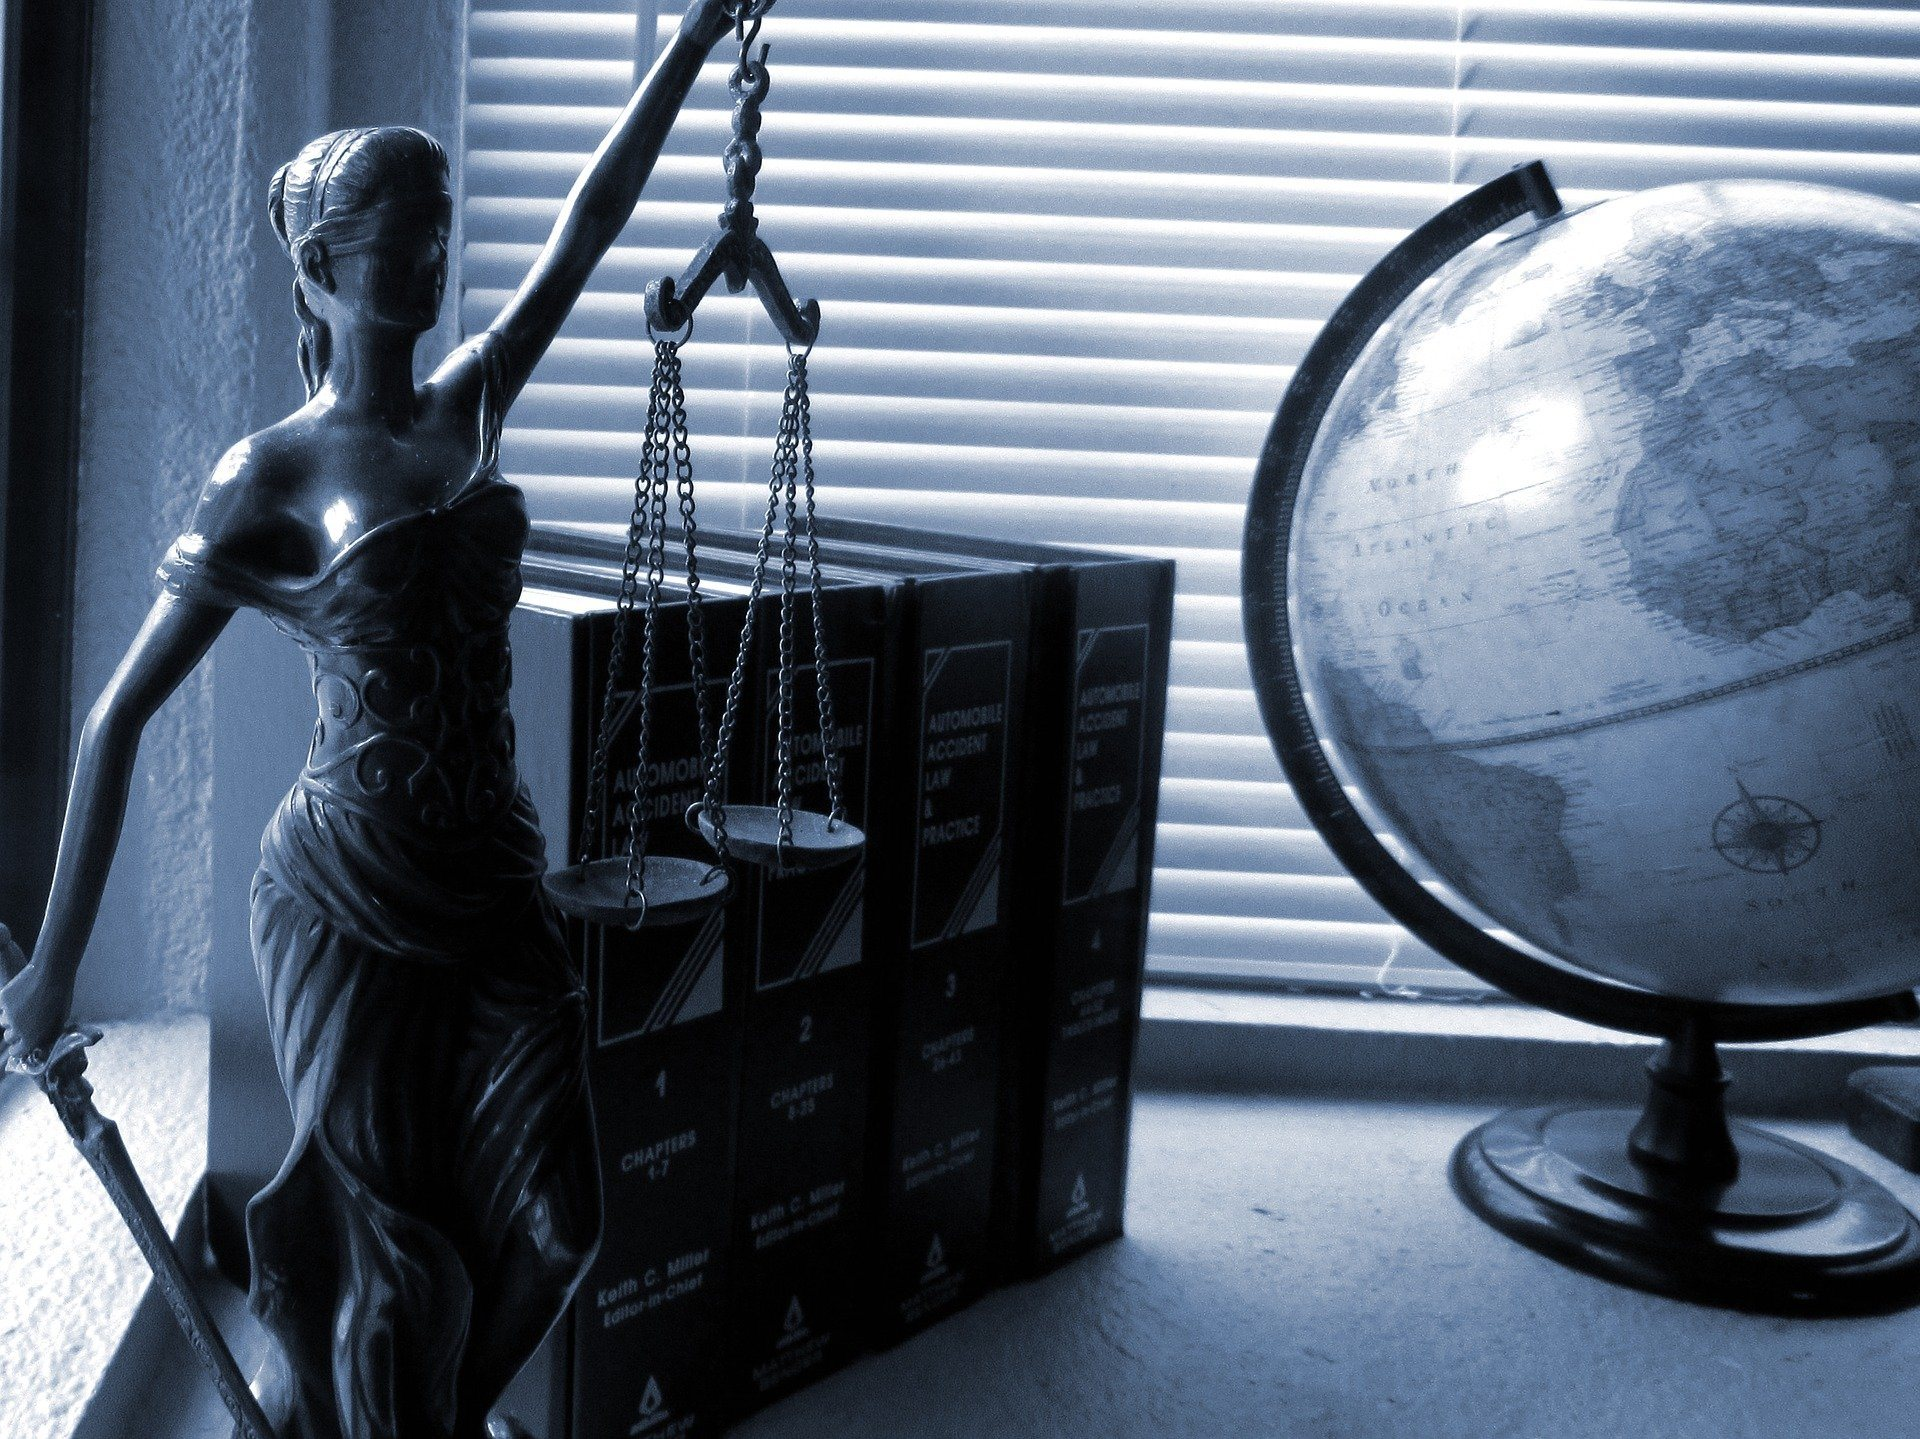 Legal assistance lawyer in Italy